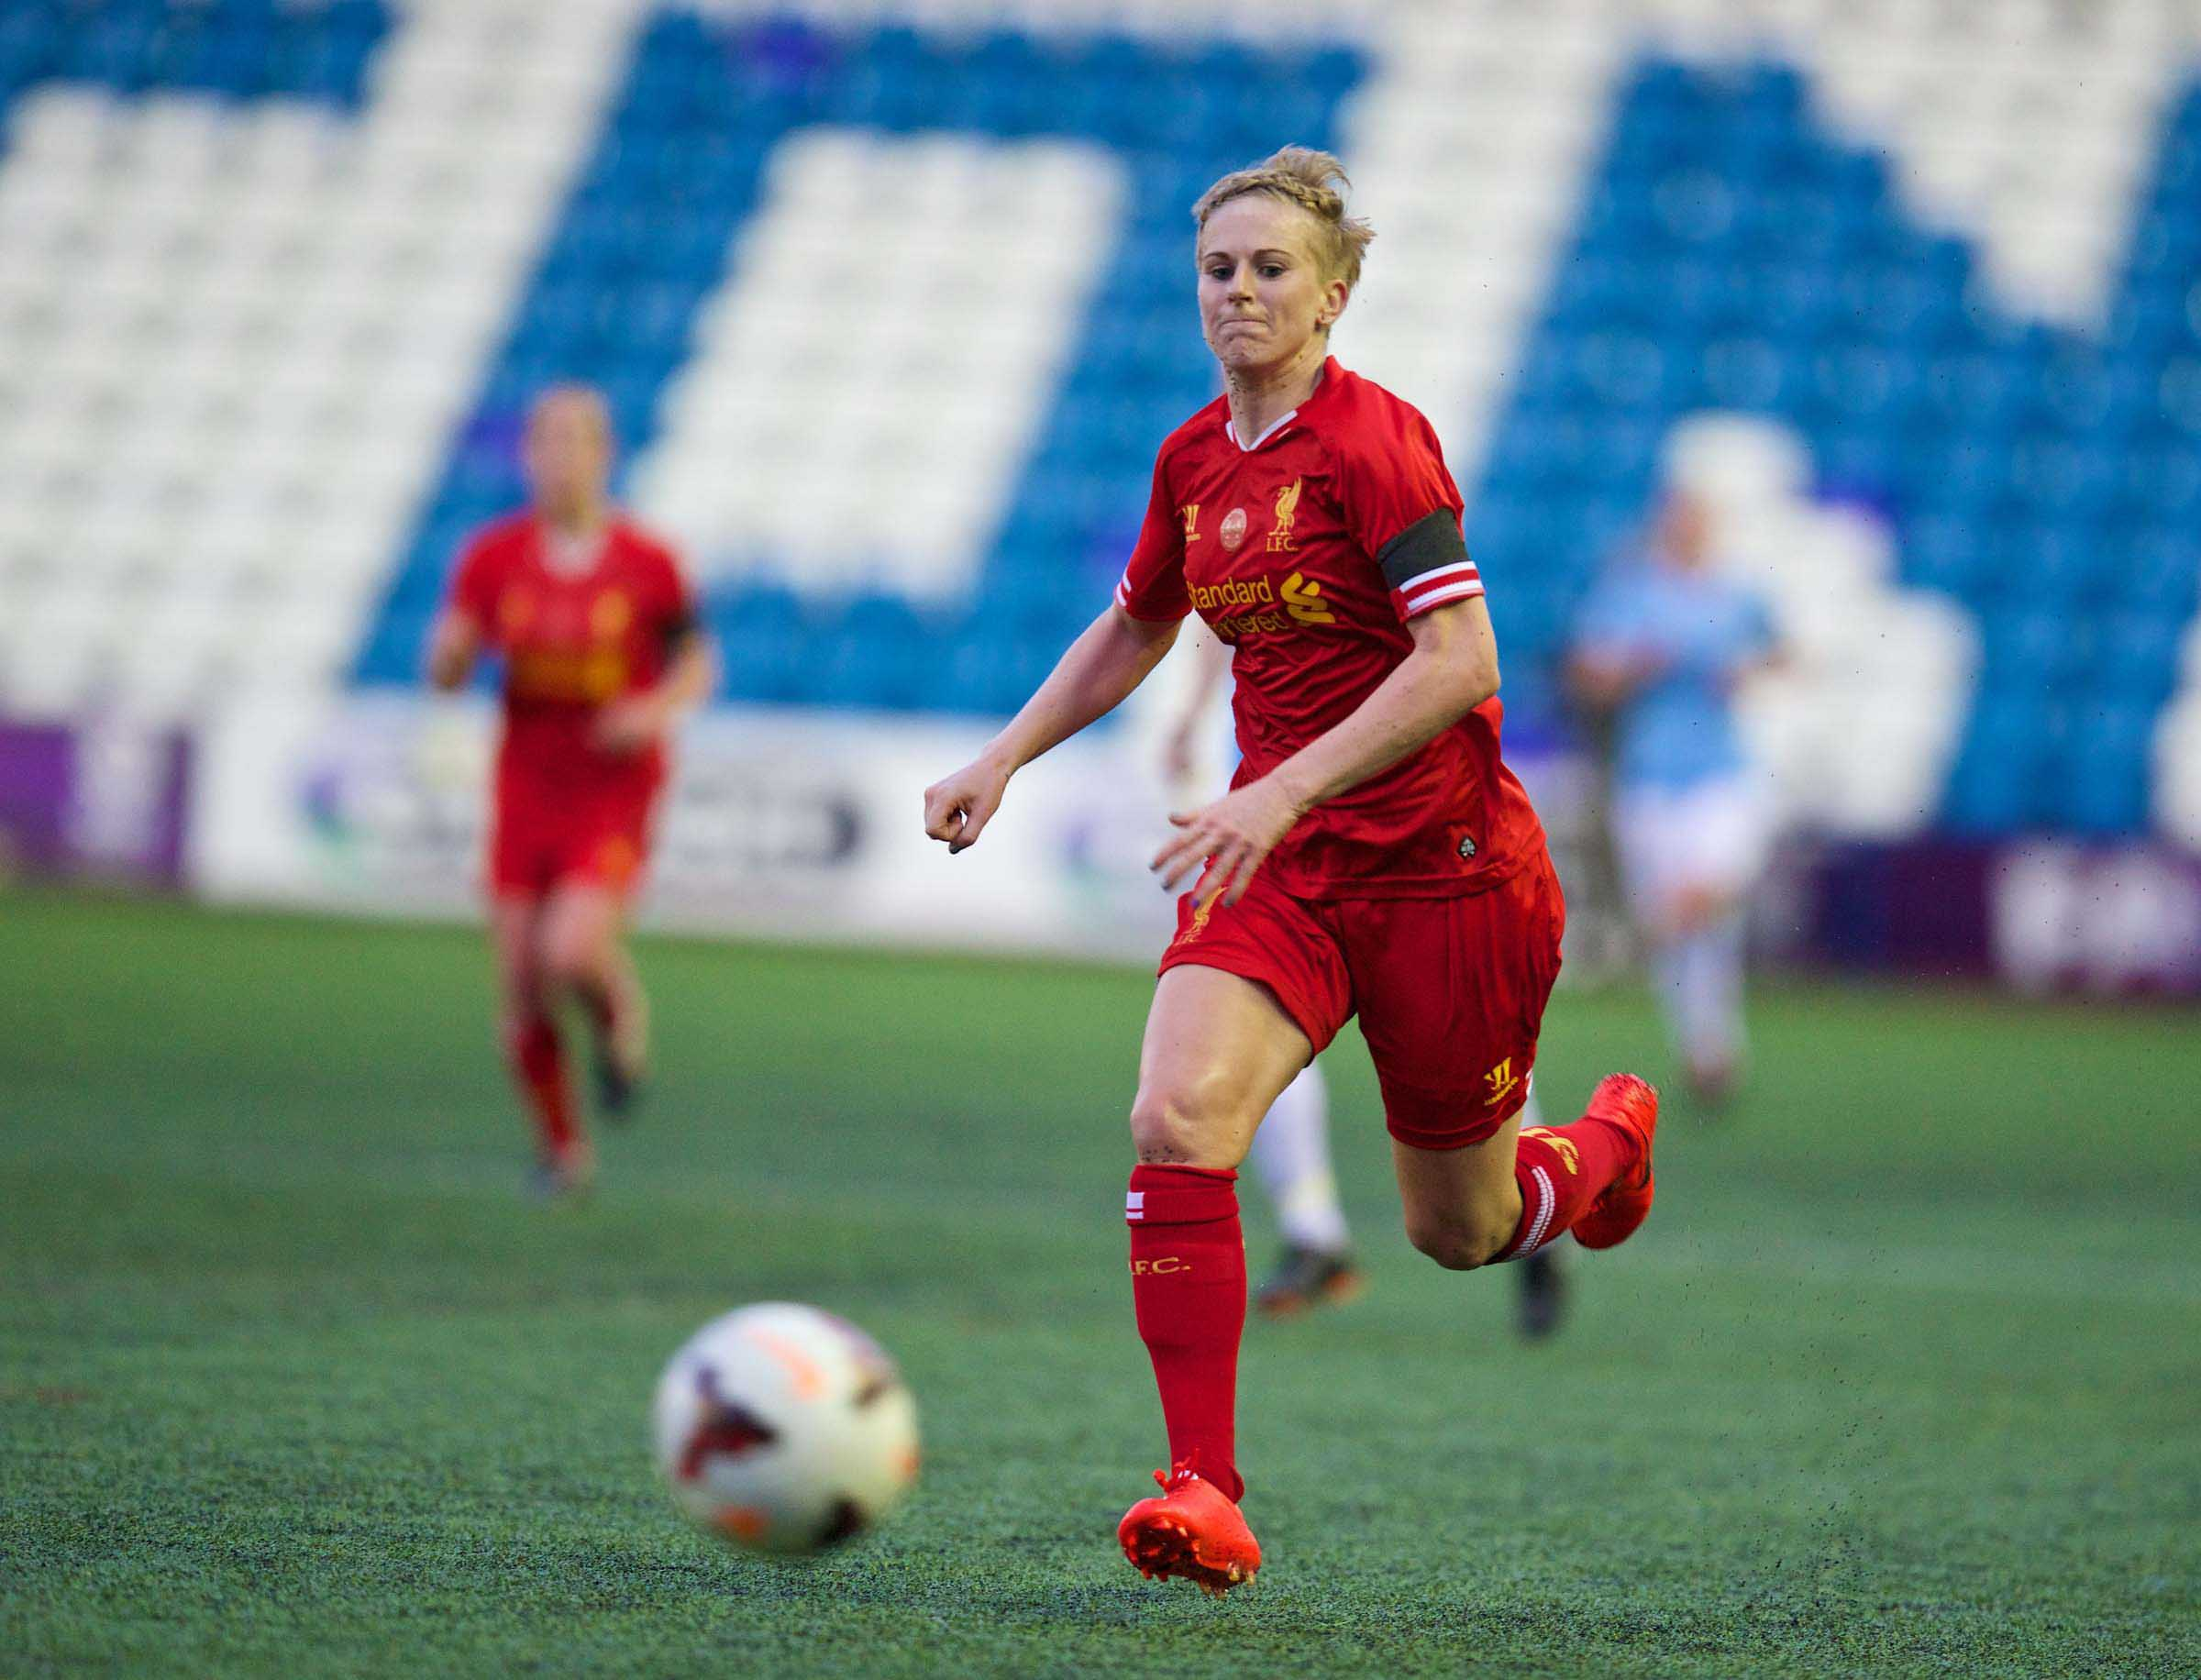 LFC LADIES: DONCASTER BELLES 0 LIVERPOOL 3